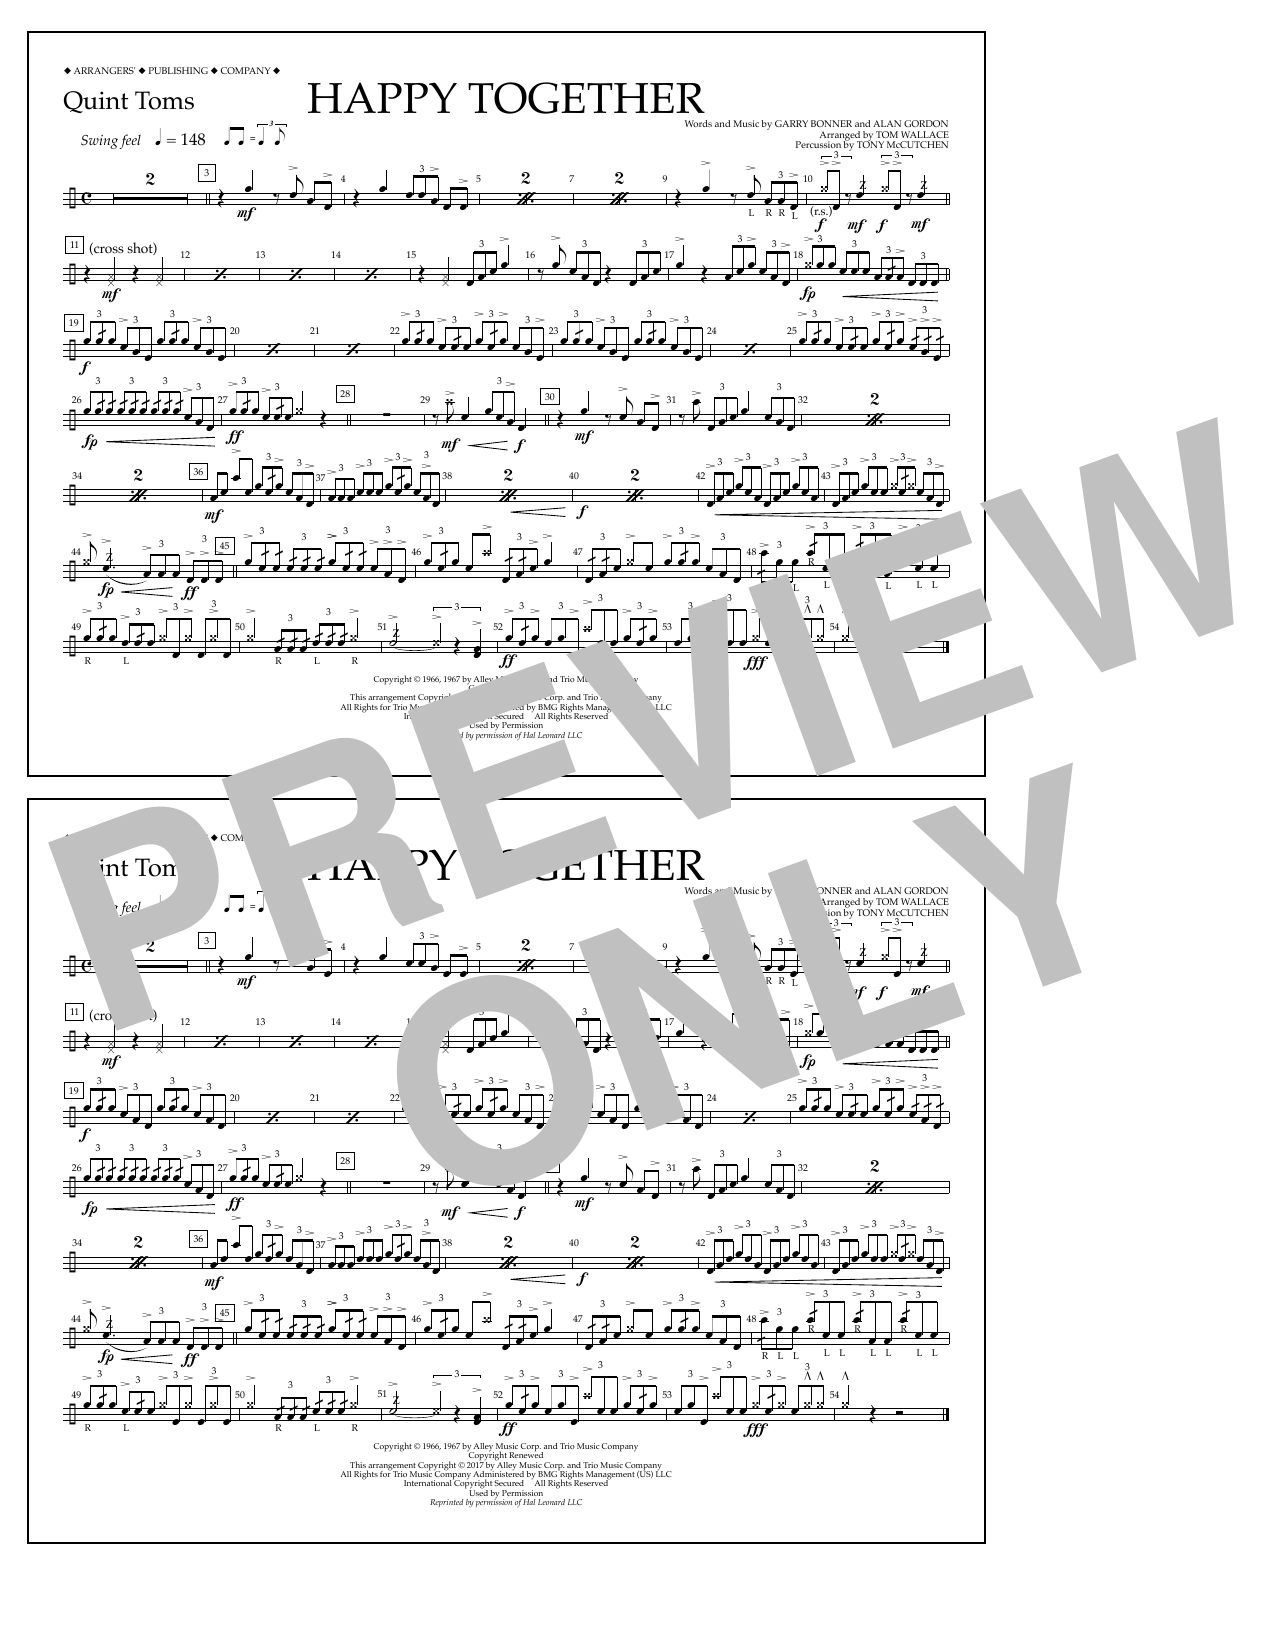 Happy Together - Quint-Toms Sheet Music